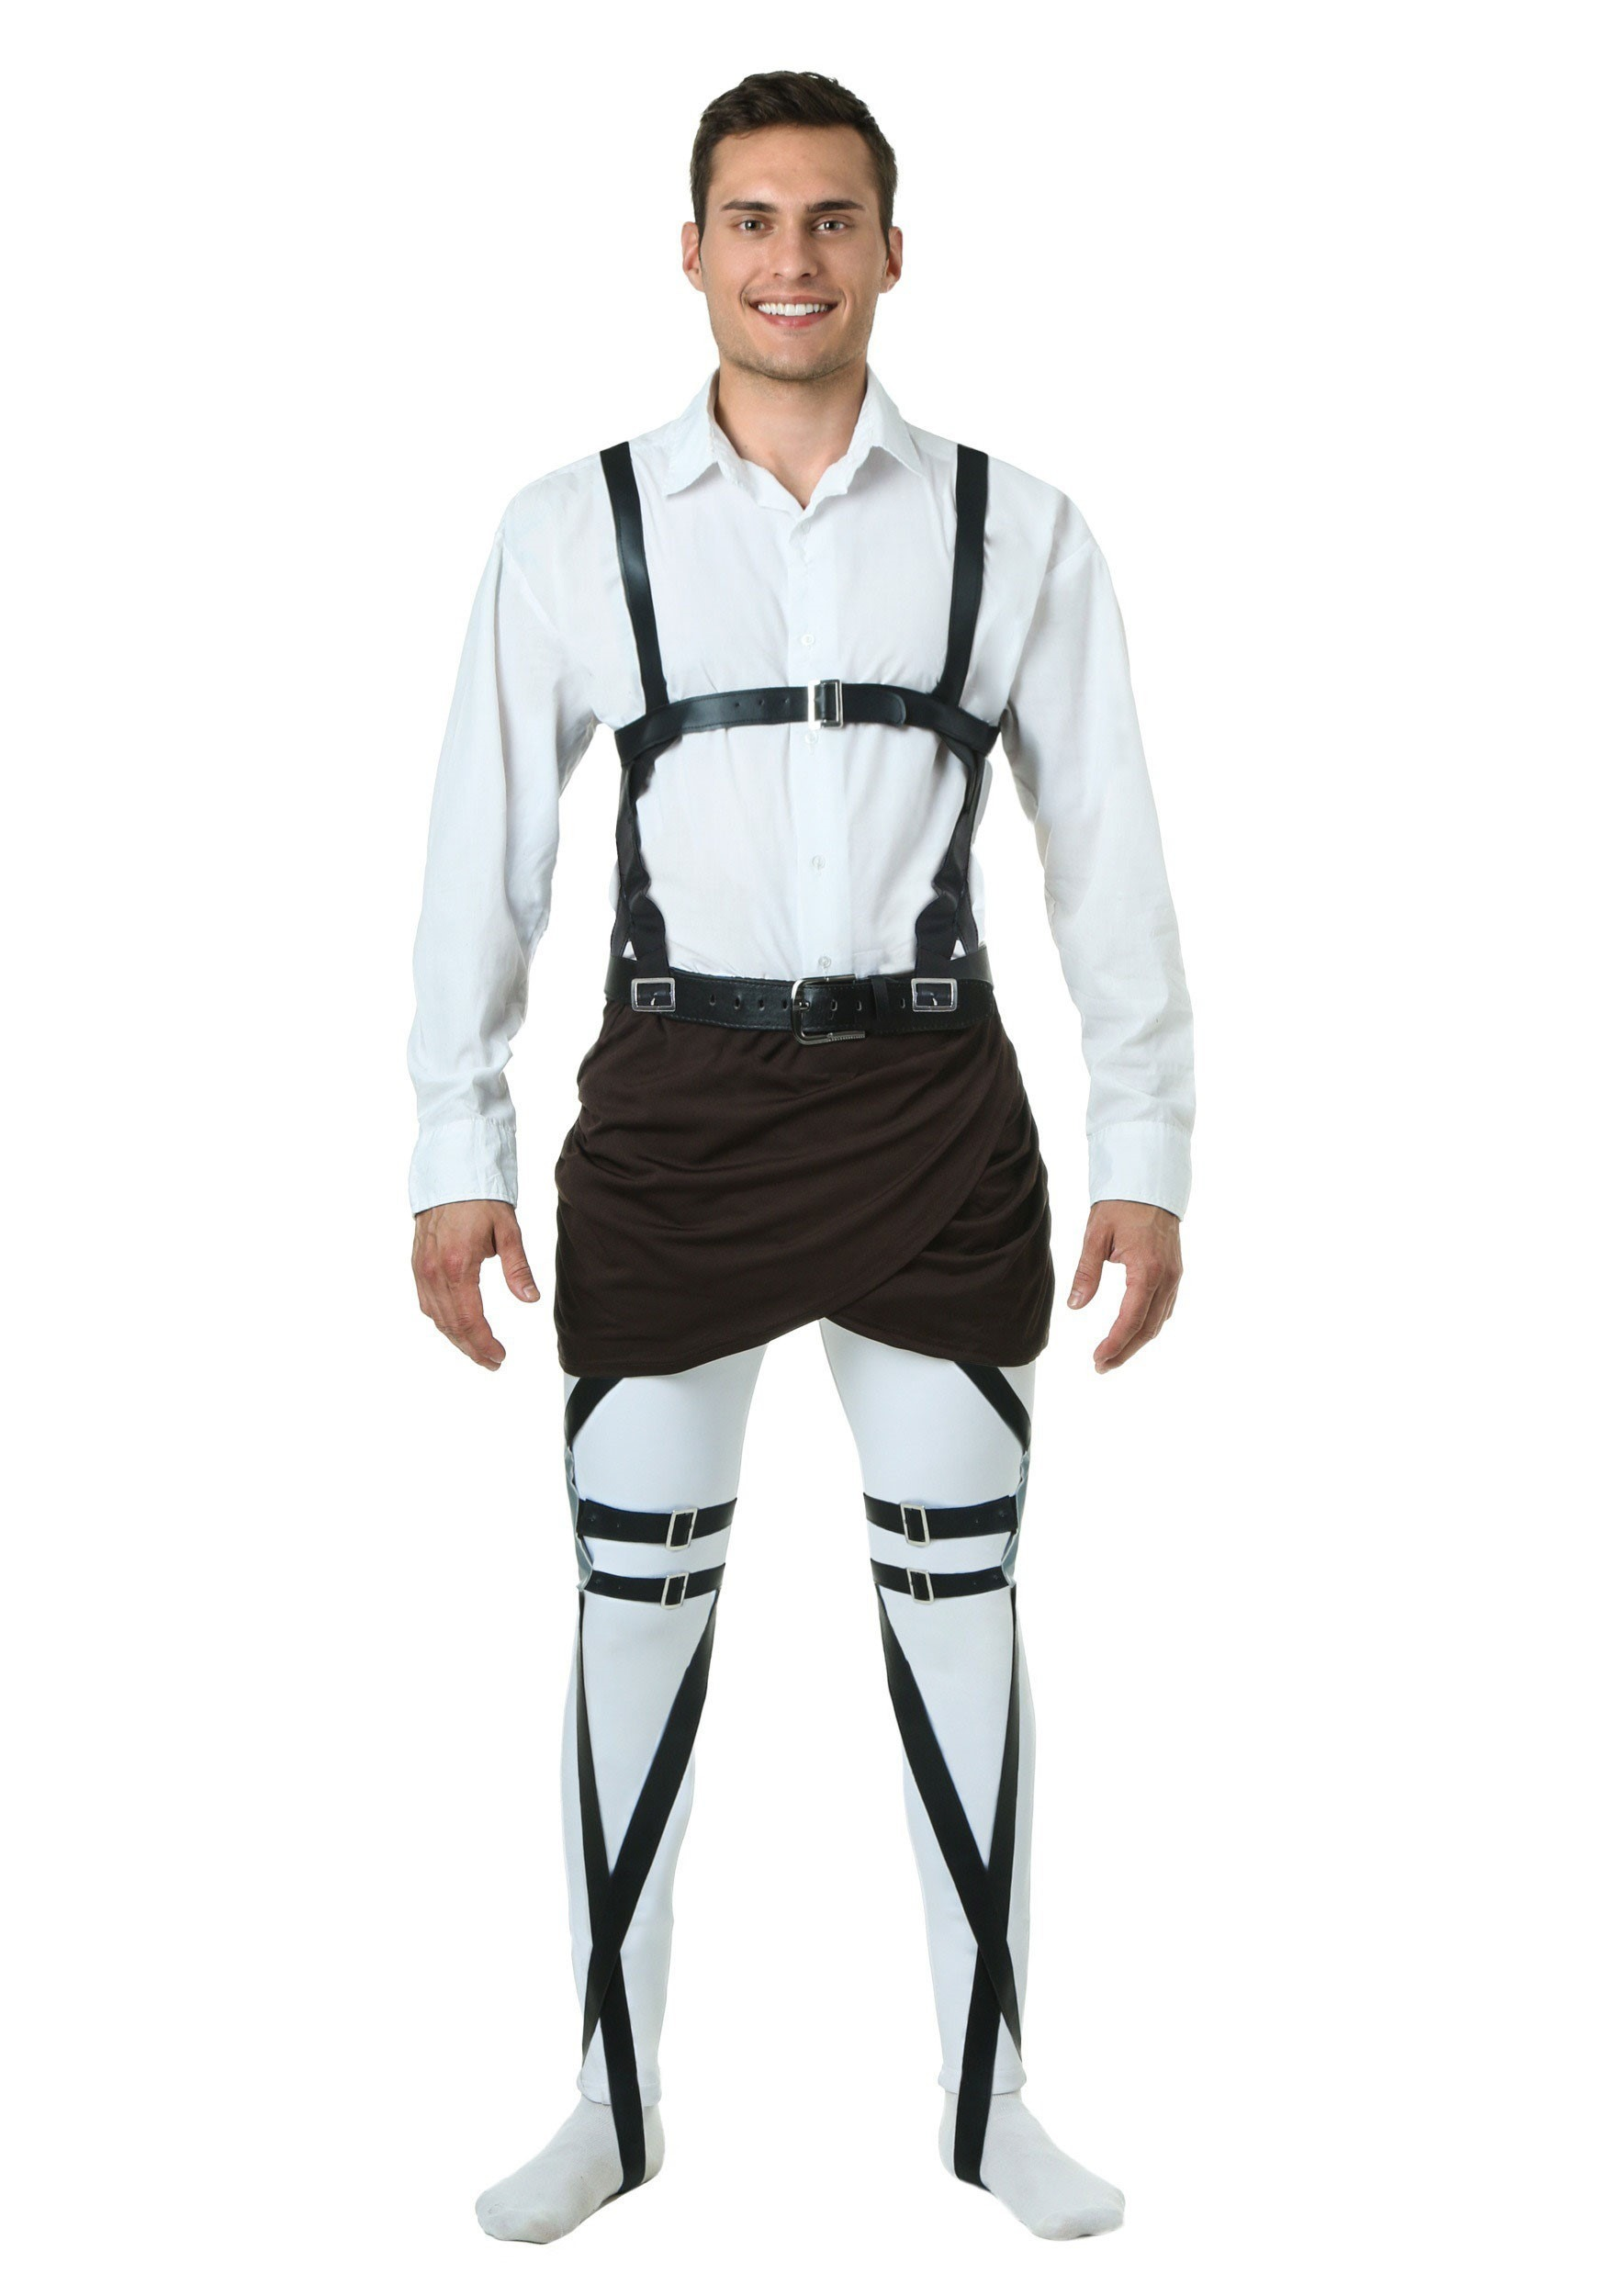 Attack on Titan Male Harness FUN2402